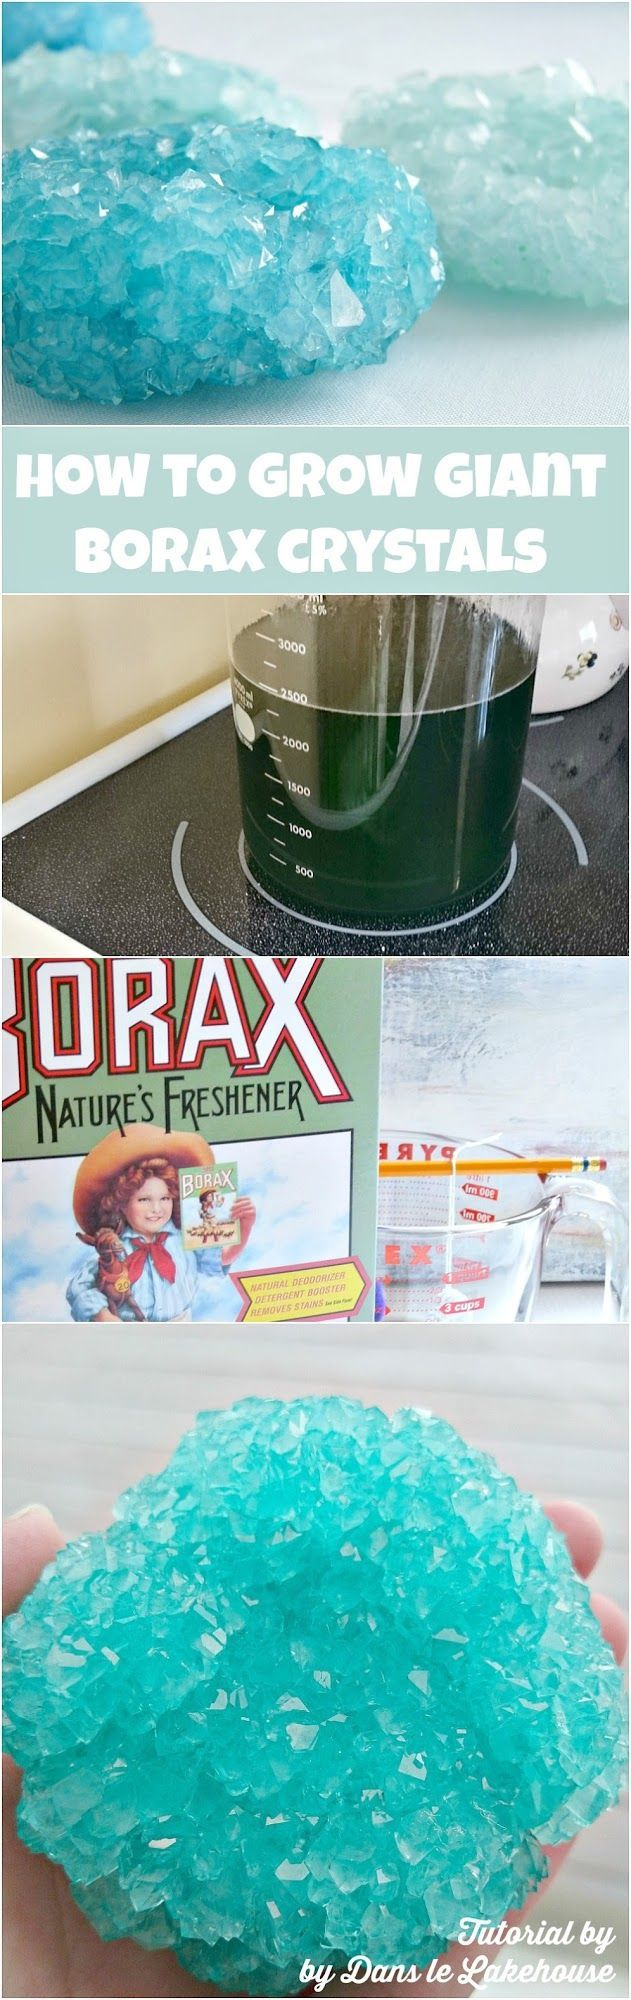 How to grow giant borax crystals // A fun science experiment/craft projects for kids and adults alike!